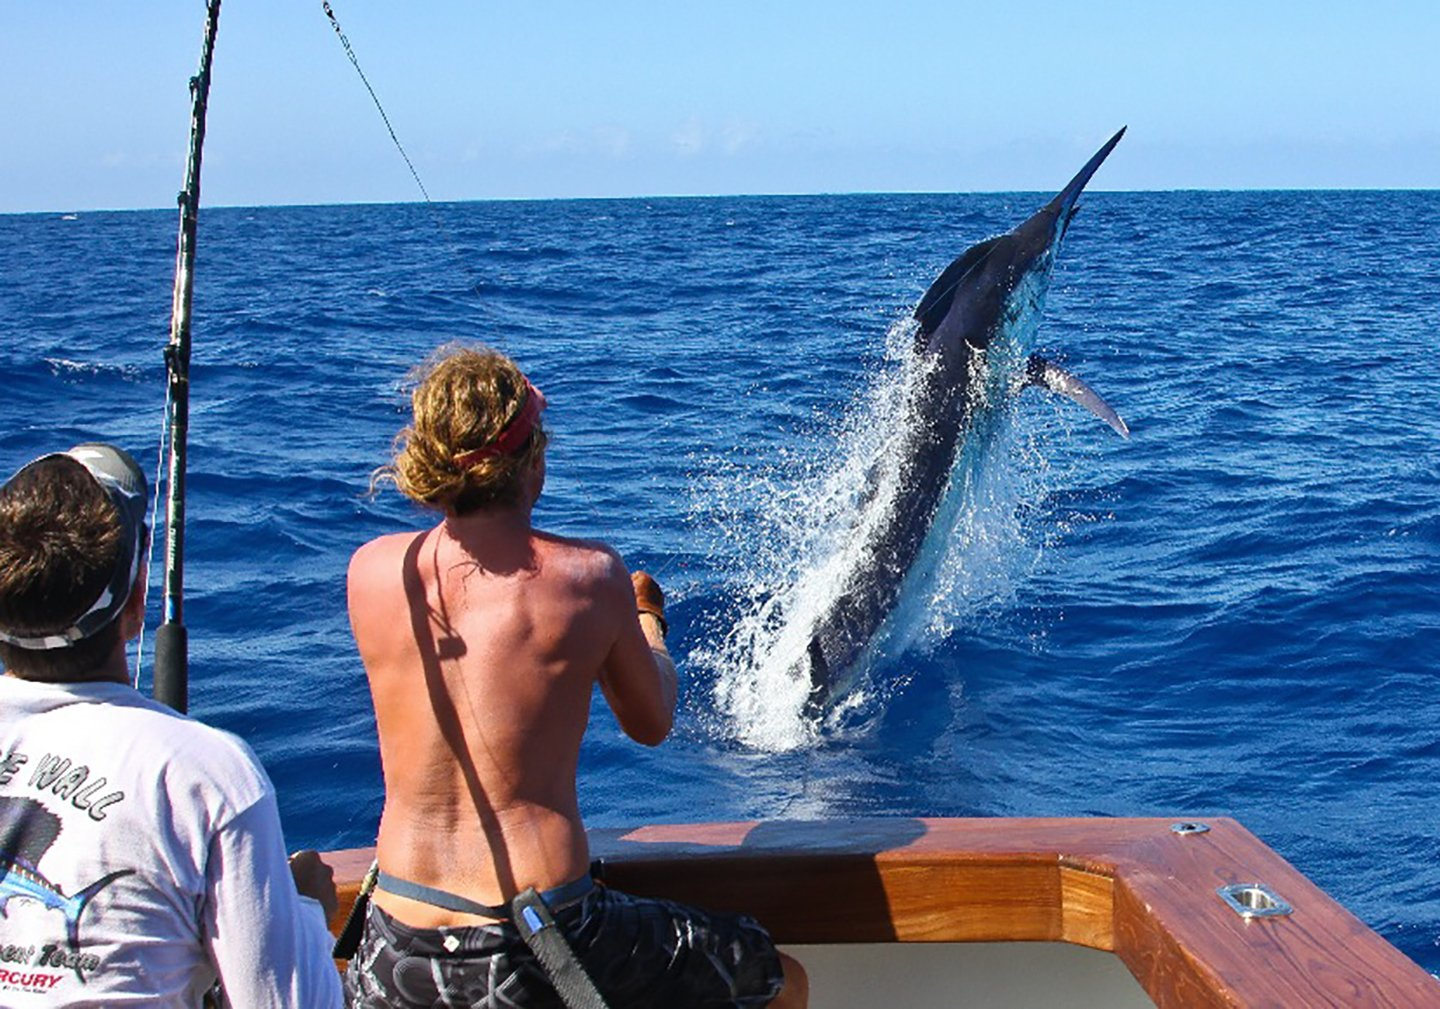 A topless male angler on a charter boat fighting a large Black Marlin which is jumping out of the water